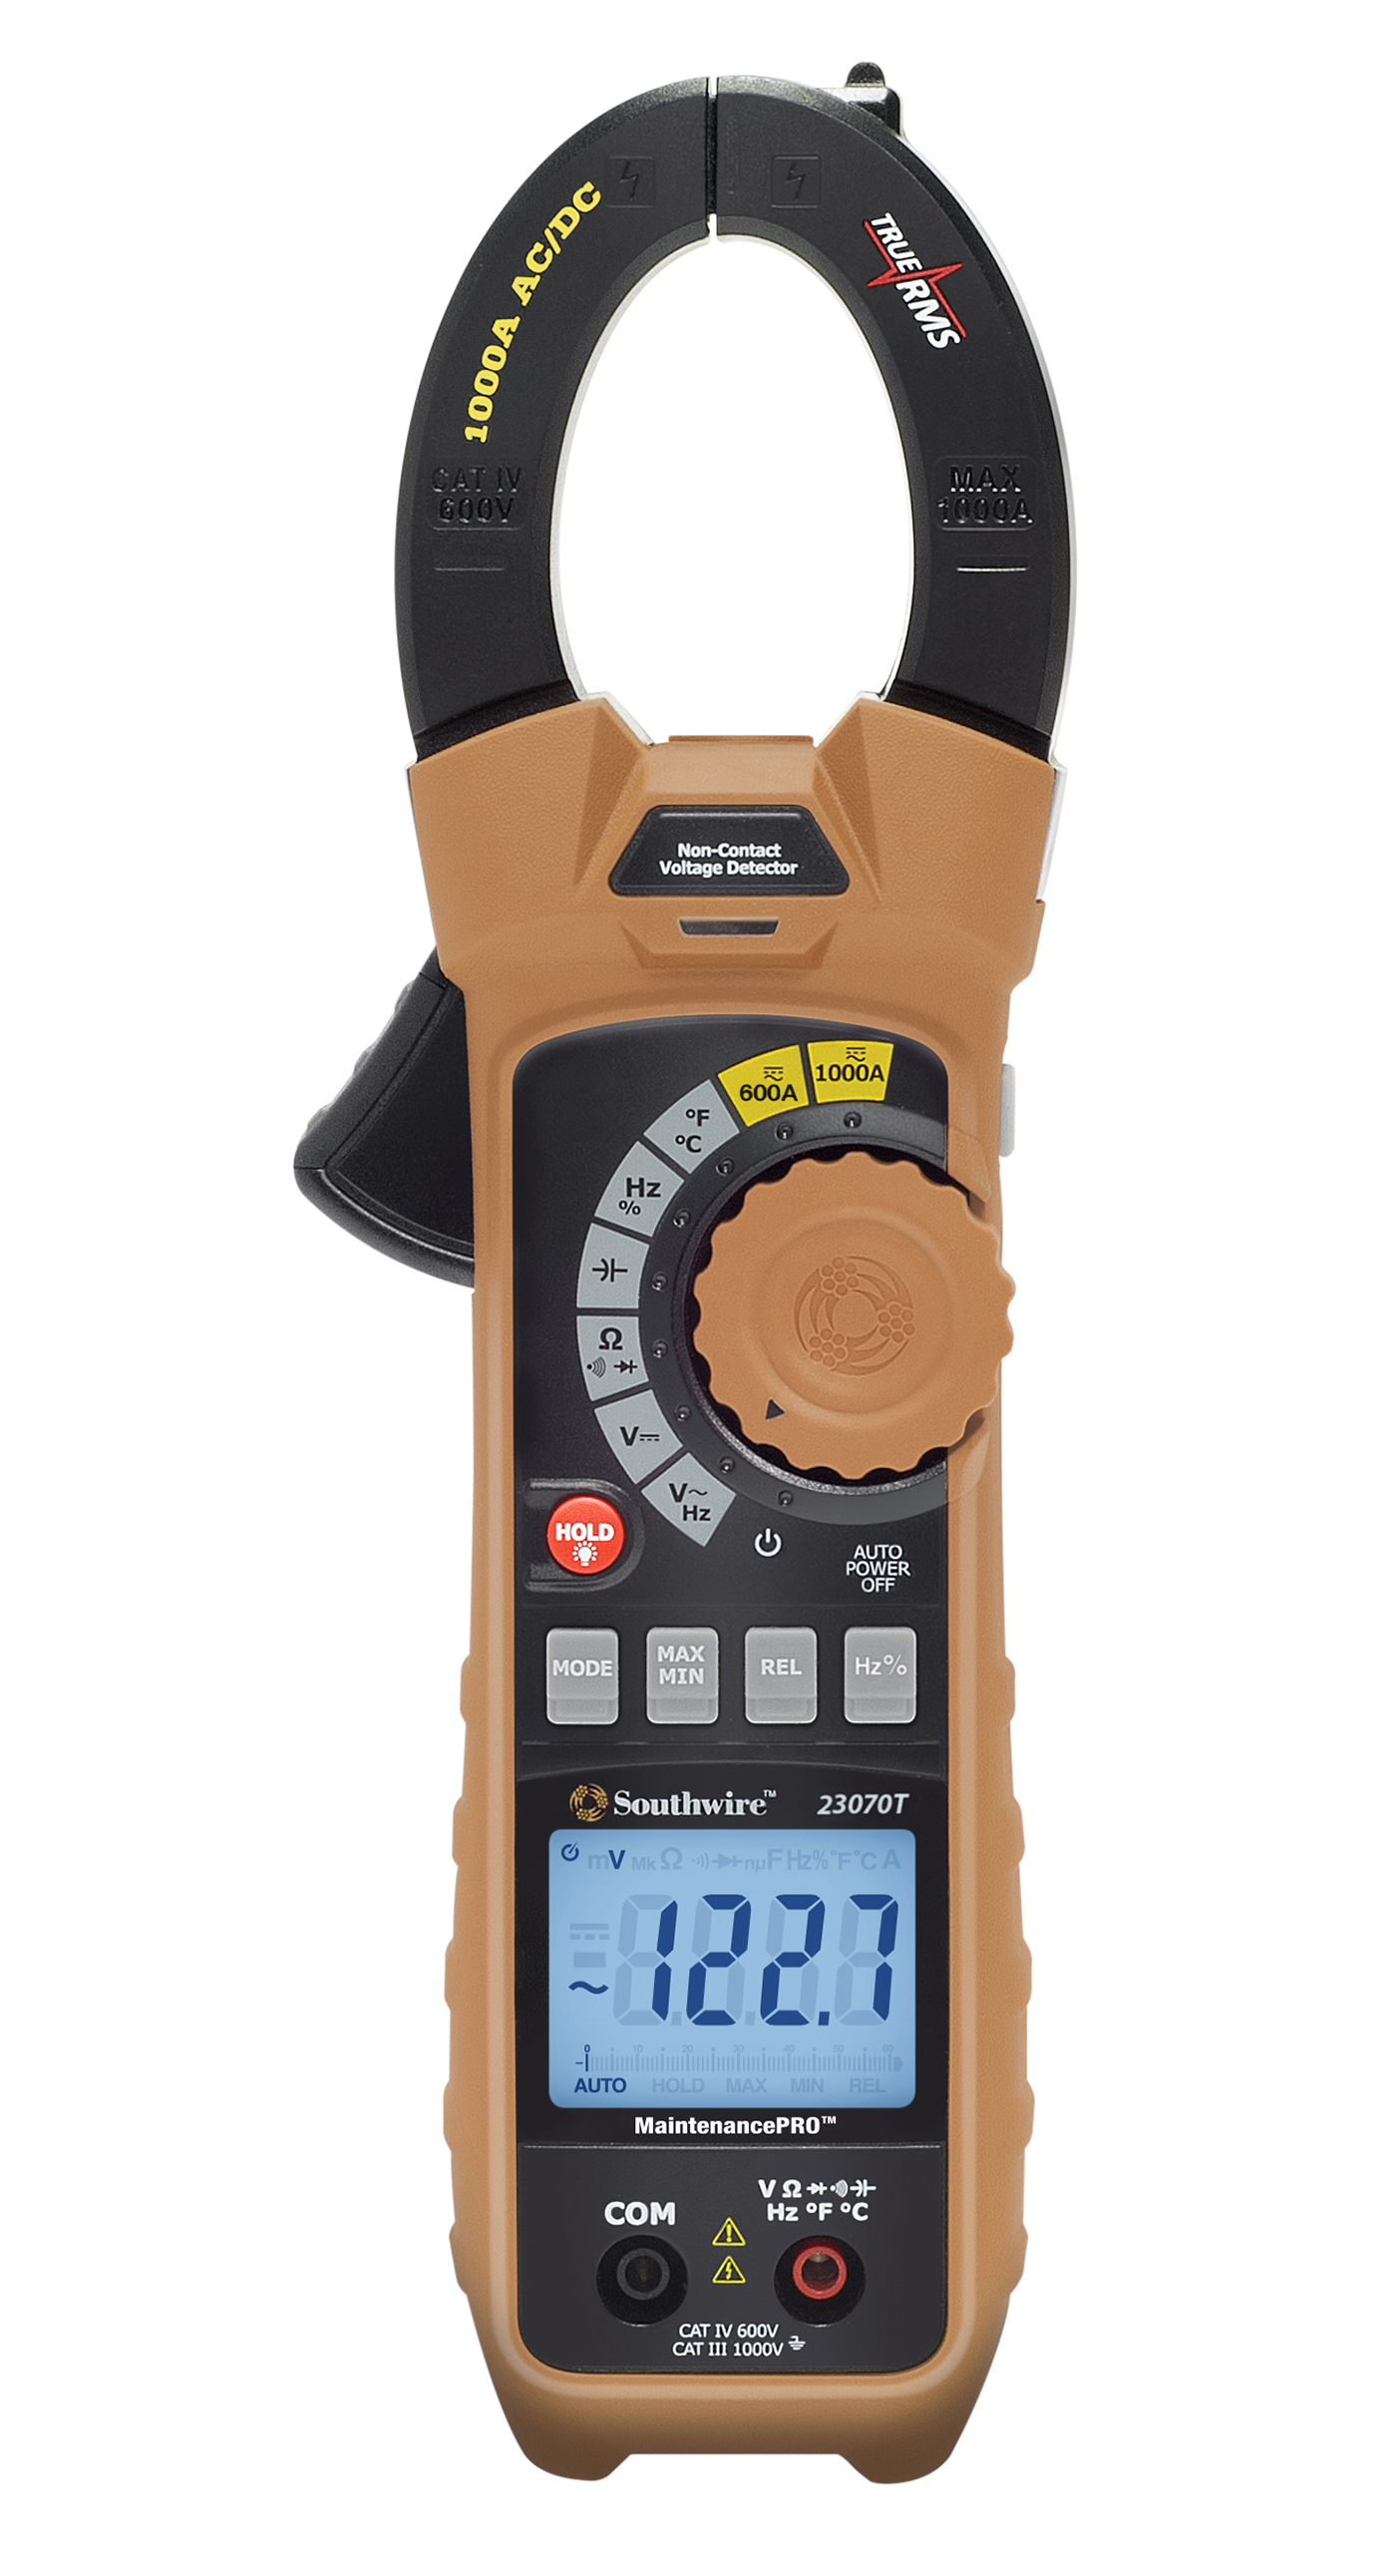 Southwire Tools /& Equipment 13090T ResidentialPRO Auto Range Multimeter with MApp Mobile App